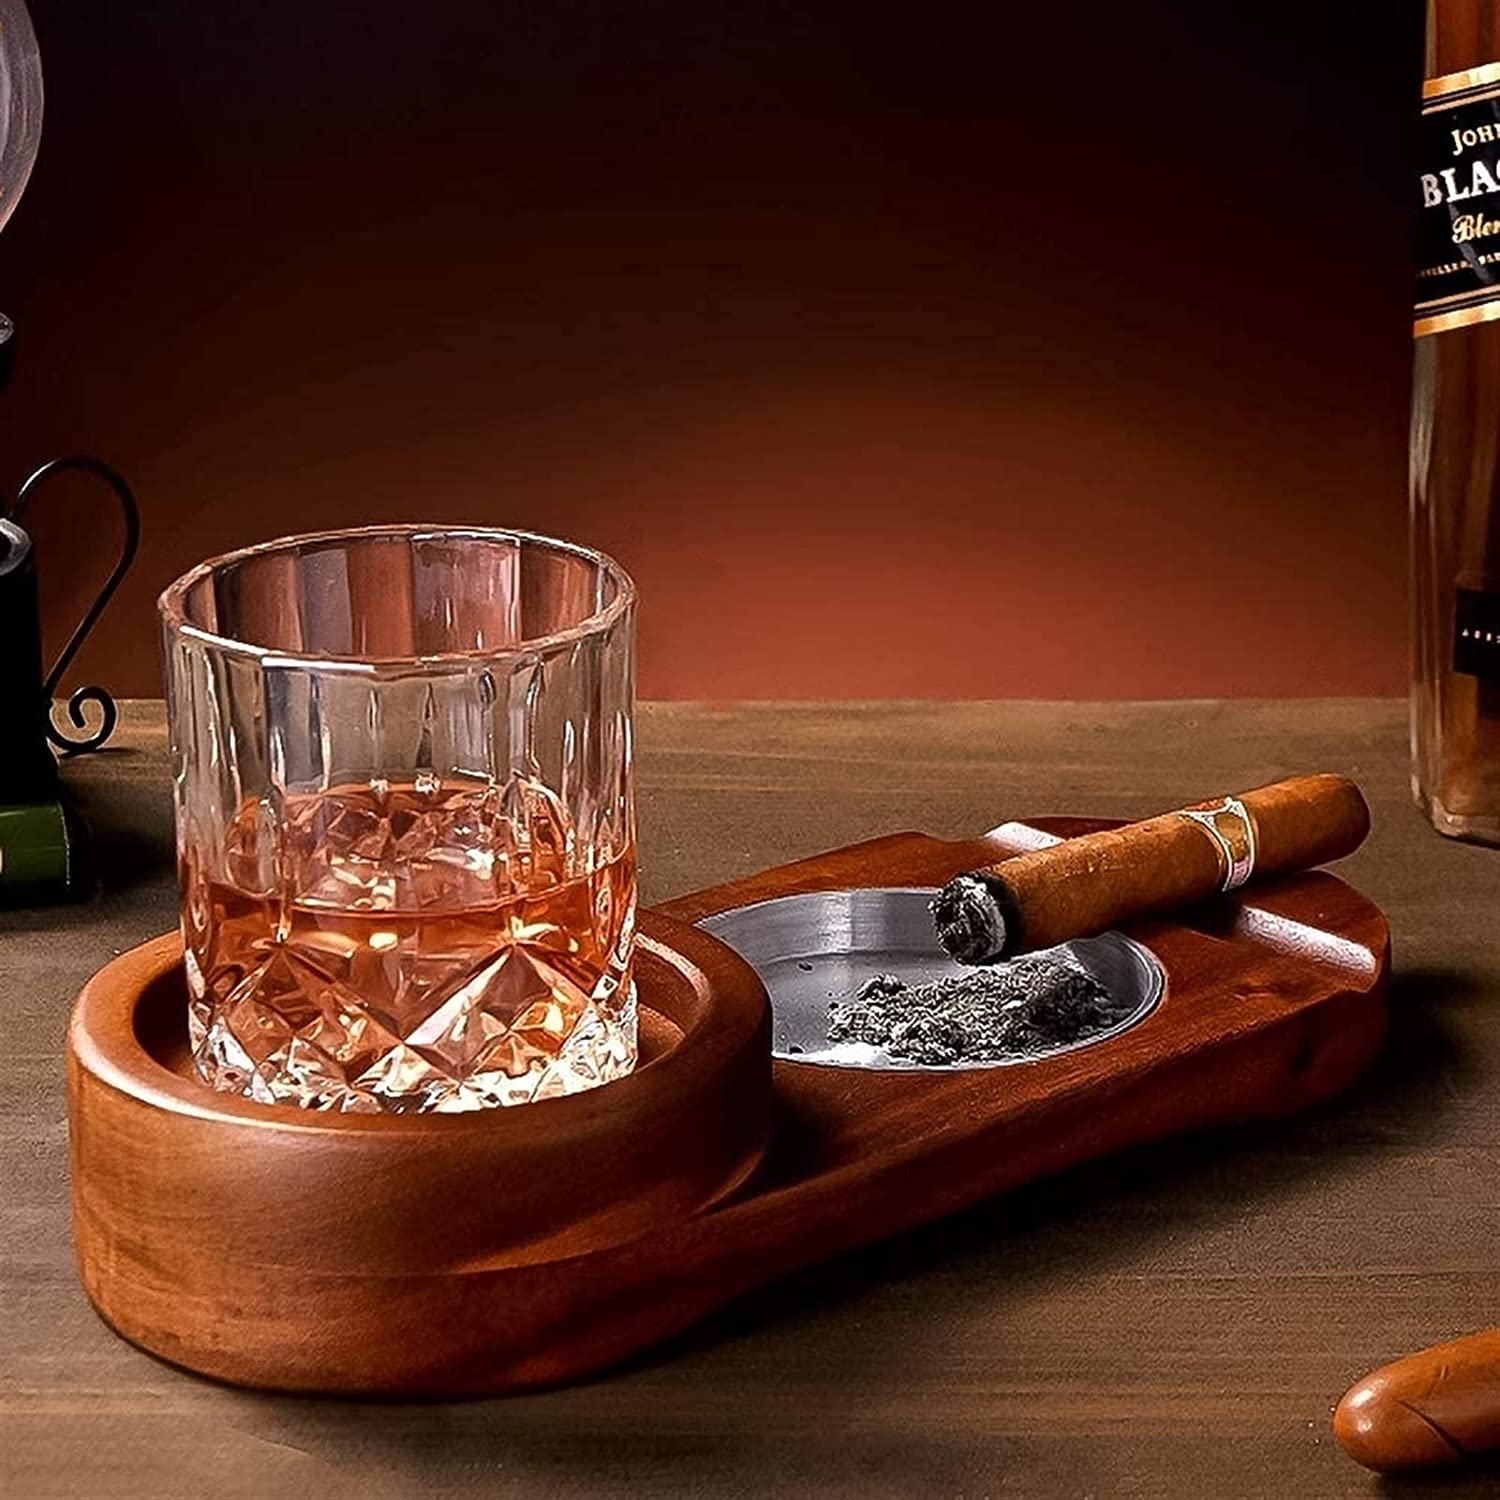 UOPW Cigar Ashtray Coaster Super sale period limited Whiskey Holder Tray and Sale item Glass